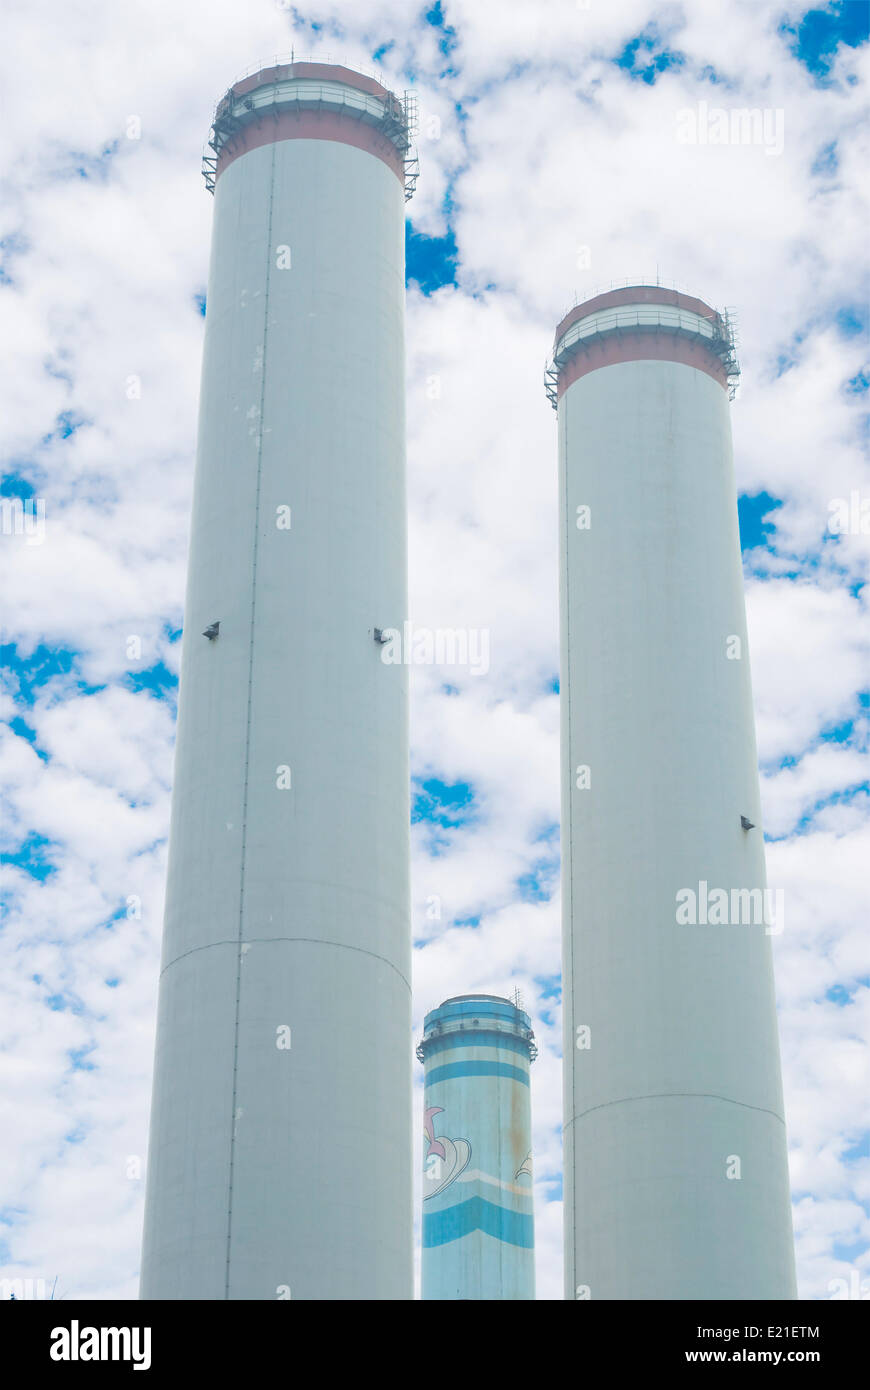 Group chimneys of thermal Power plant - Stock Image